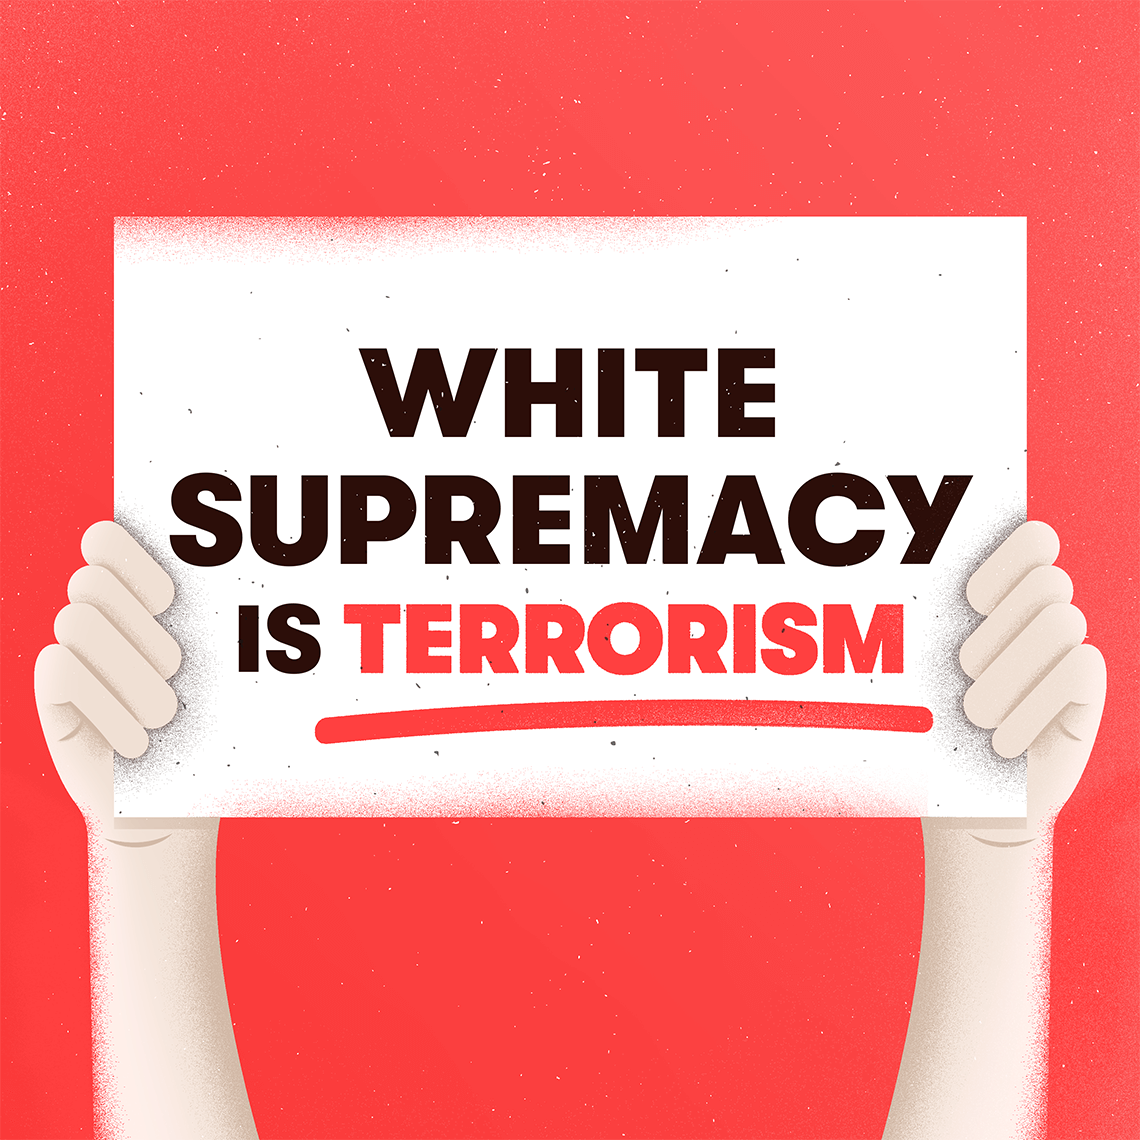 p_PoliticalSocial_White Supremacy_OP